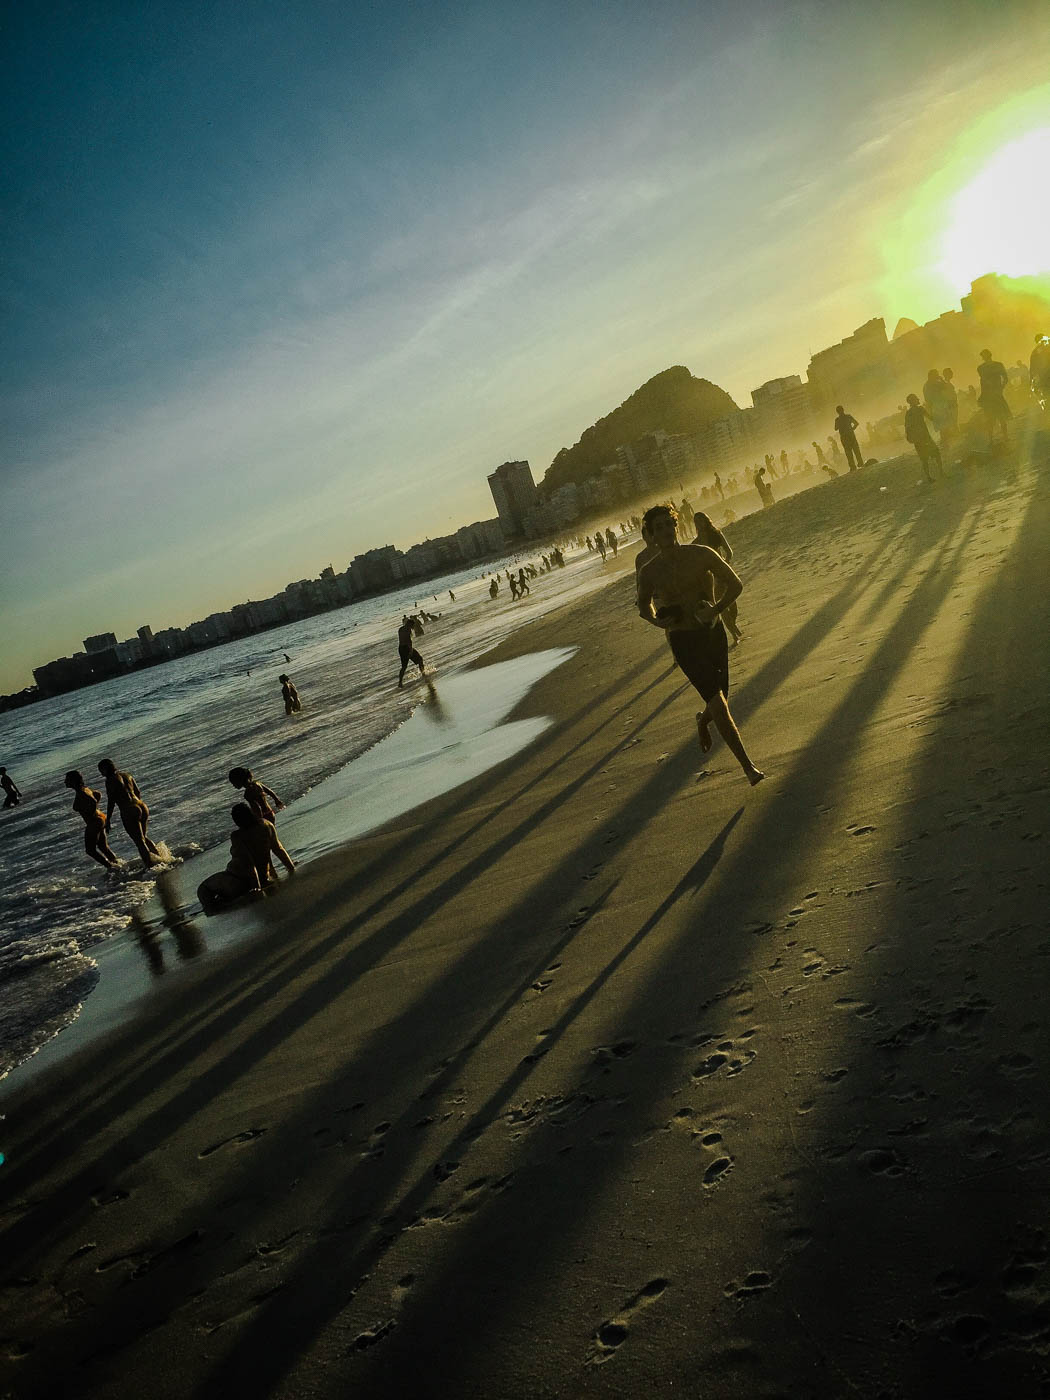 Ipanema Beach I South America Travel Bucket List. 90 Awesome Things to do in South America When Backpacking and Travelling #southamerica #bucketlist #traveldestinations